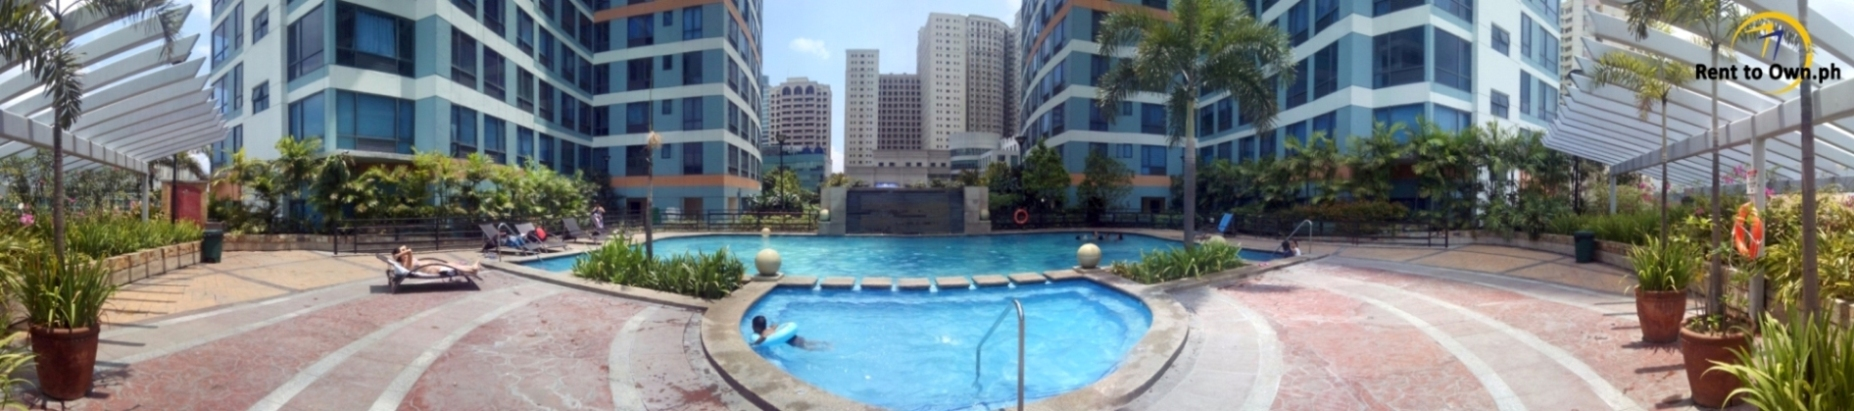 Swimming Pool 1 - http://www.renttoown.ph